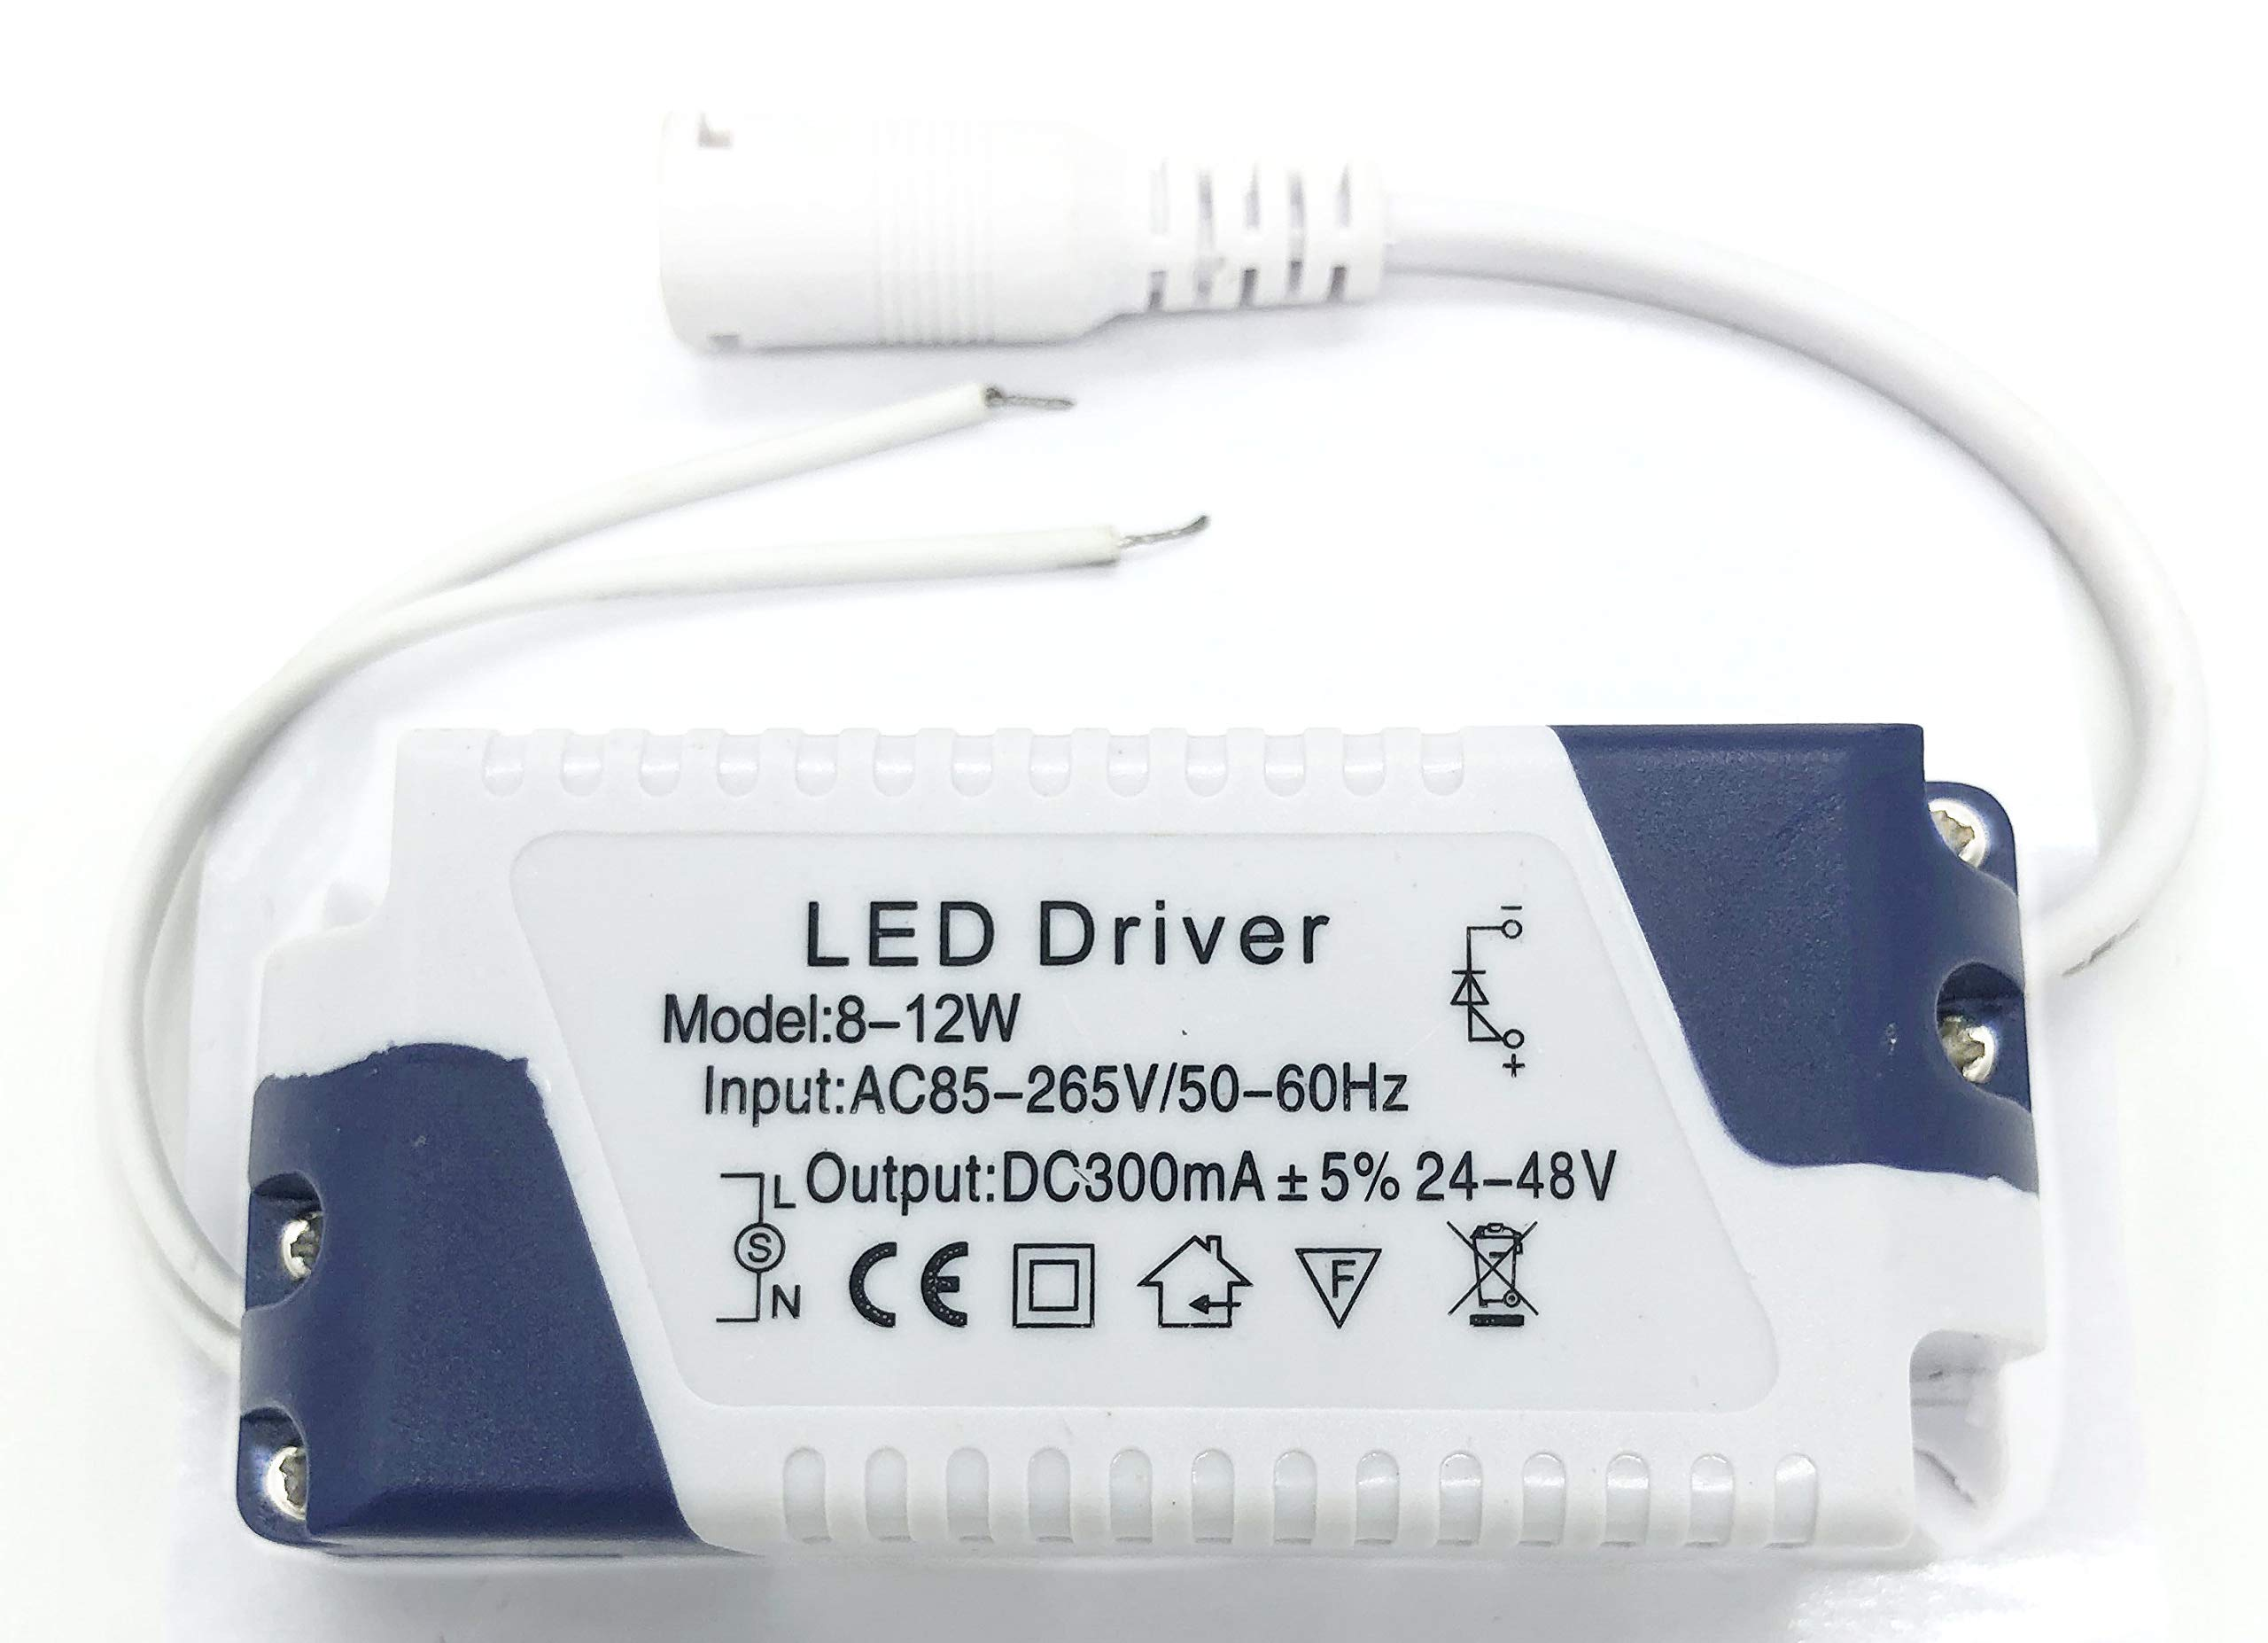 LED Driver 3-5W Constant Current 300mA DC Connector External Power Supply LED Ceiling Lamp Transformer High Power AC 85-265V 3-5W